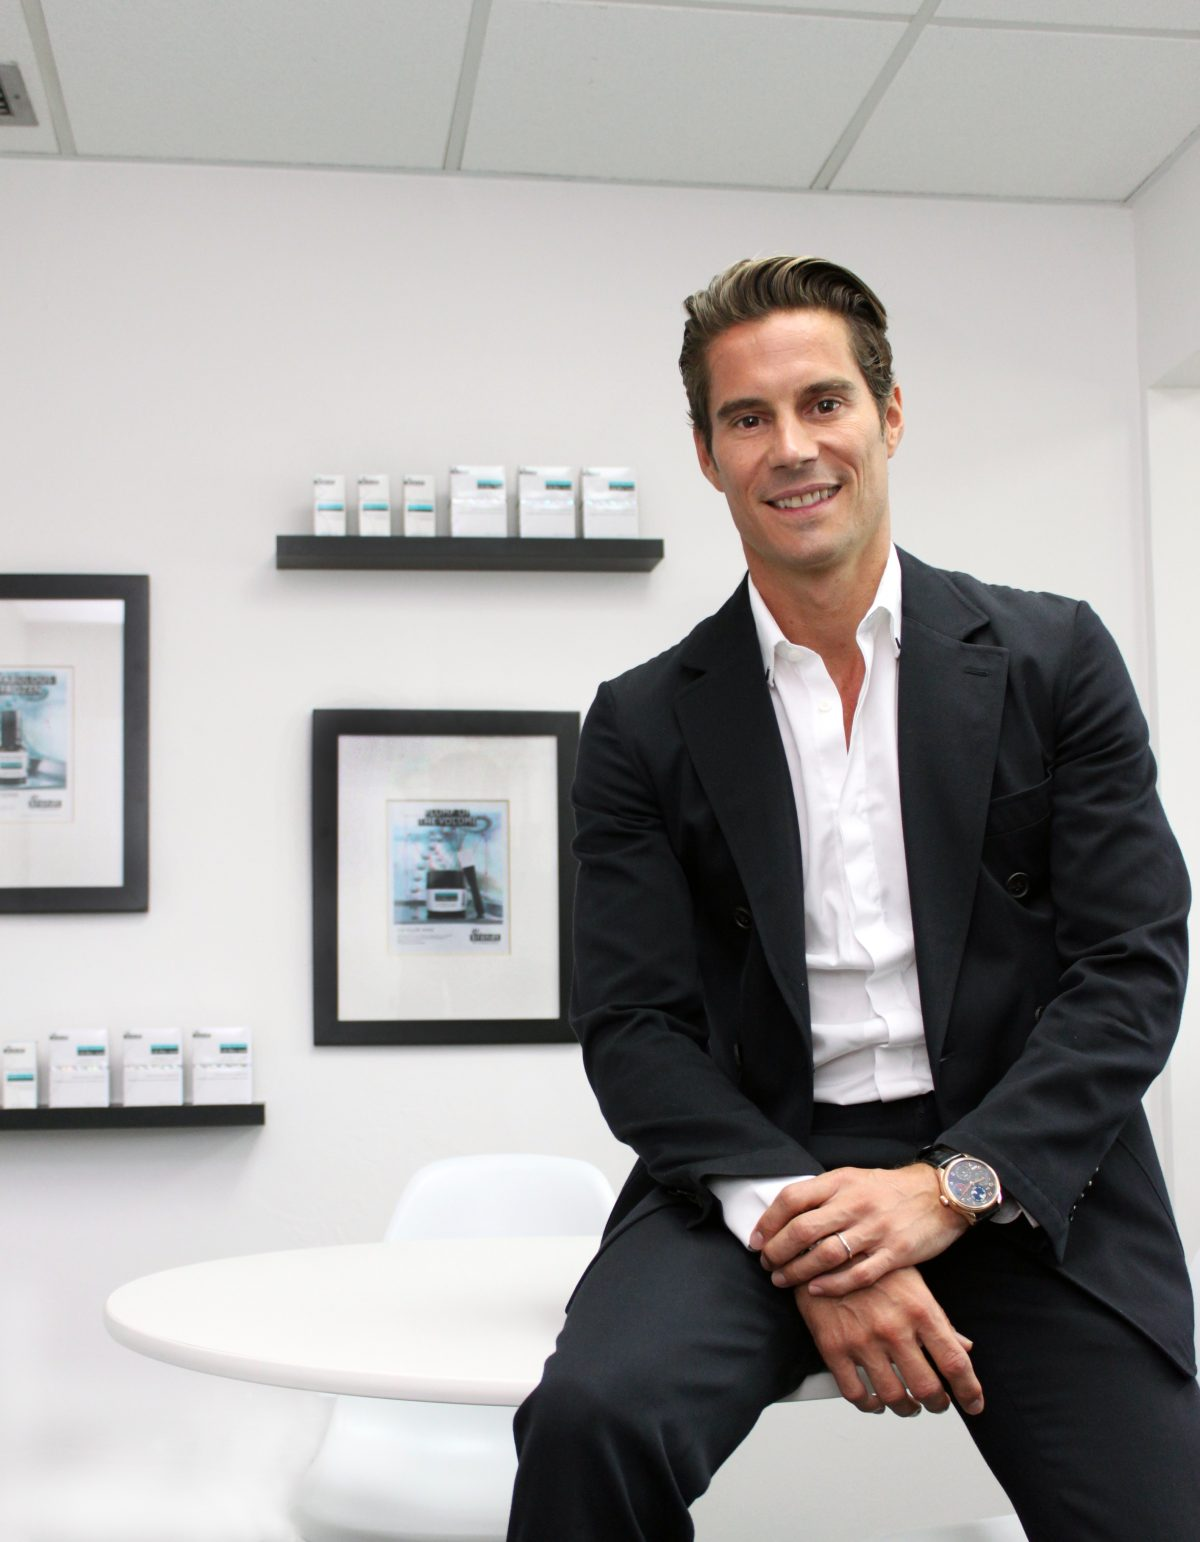 Stephane Colleu, CEO of Dr. Brandt Skincare